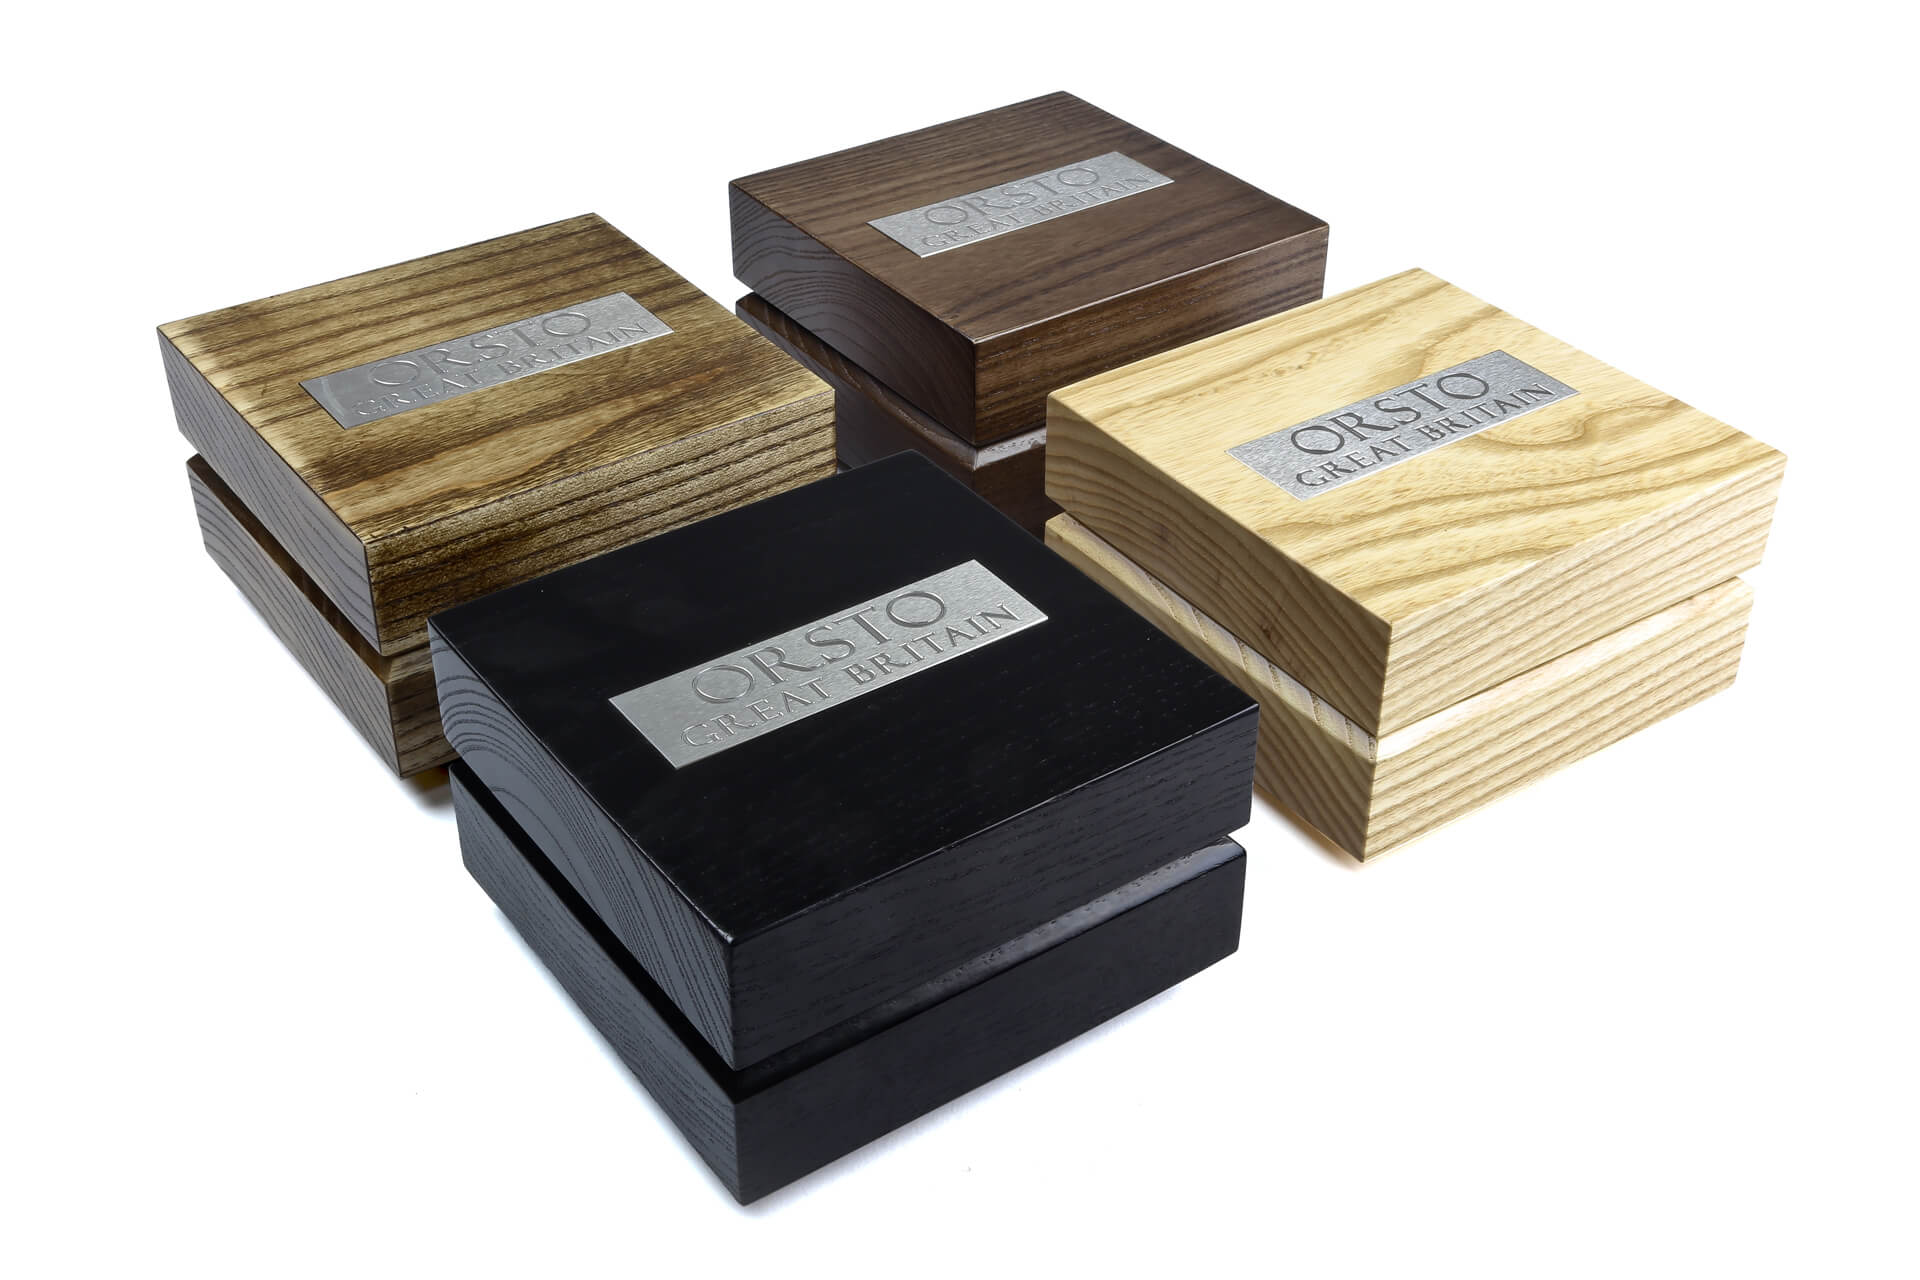 Orsto Wooden Luxury Jewelry Packaging  Moran's Moran's